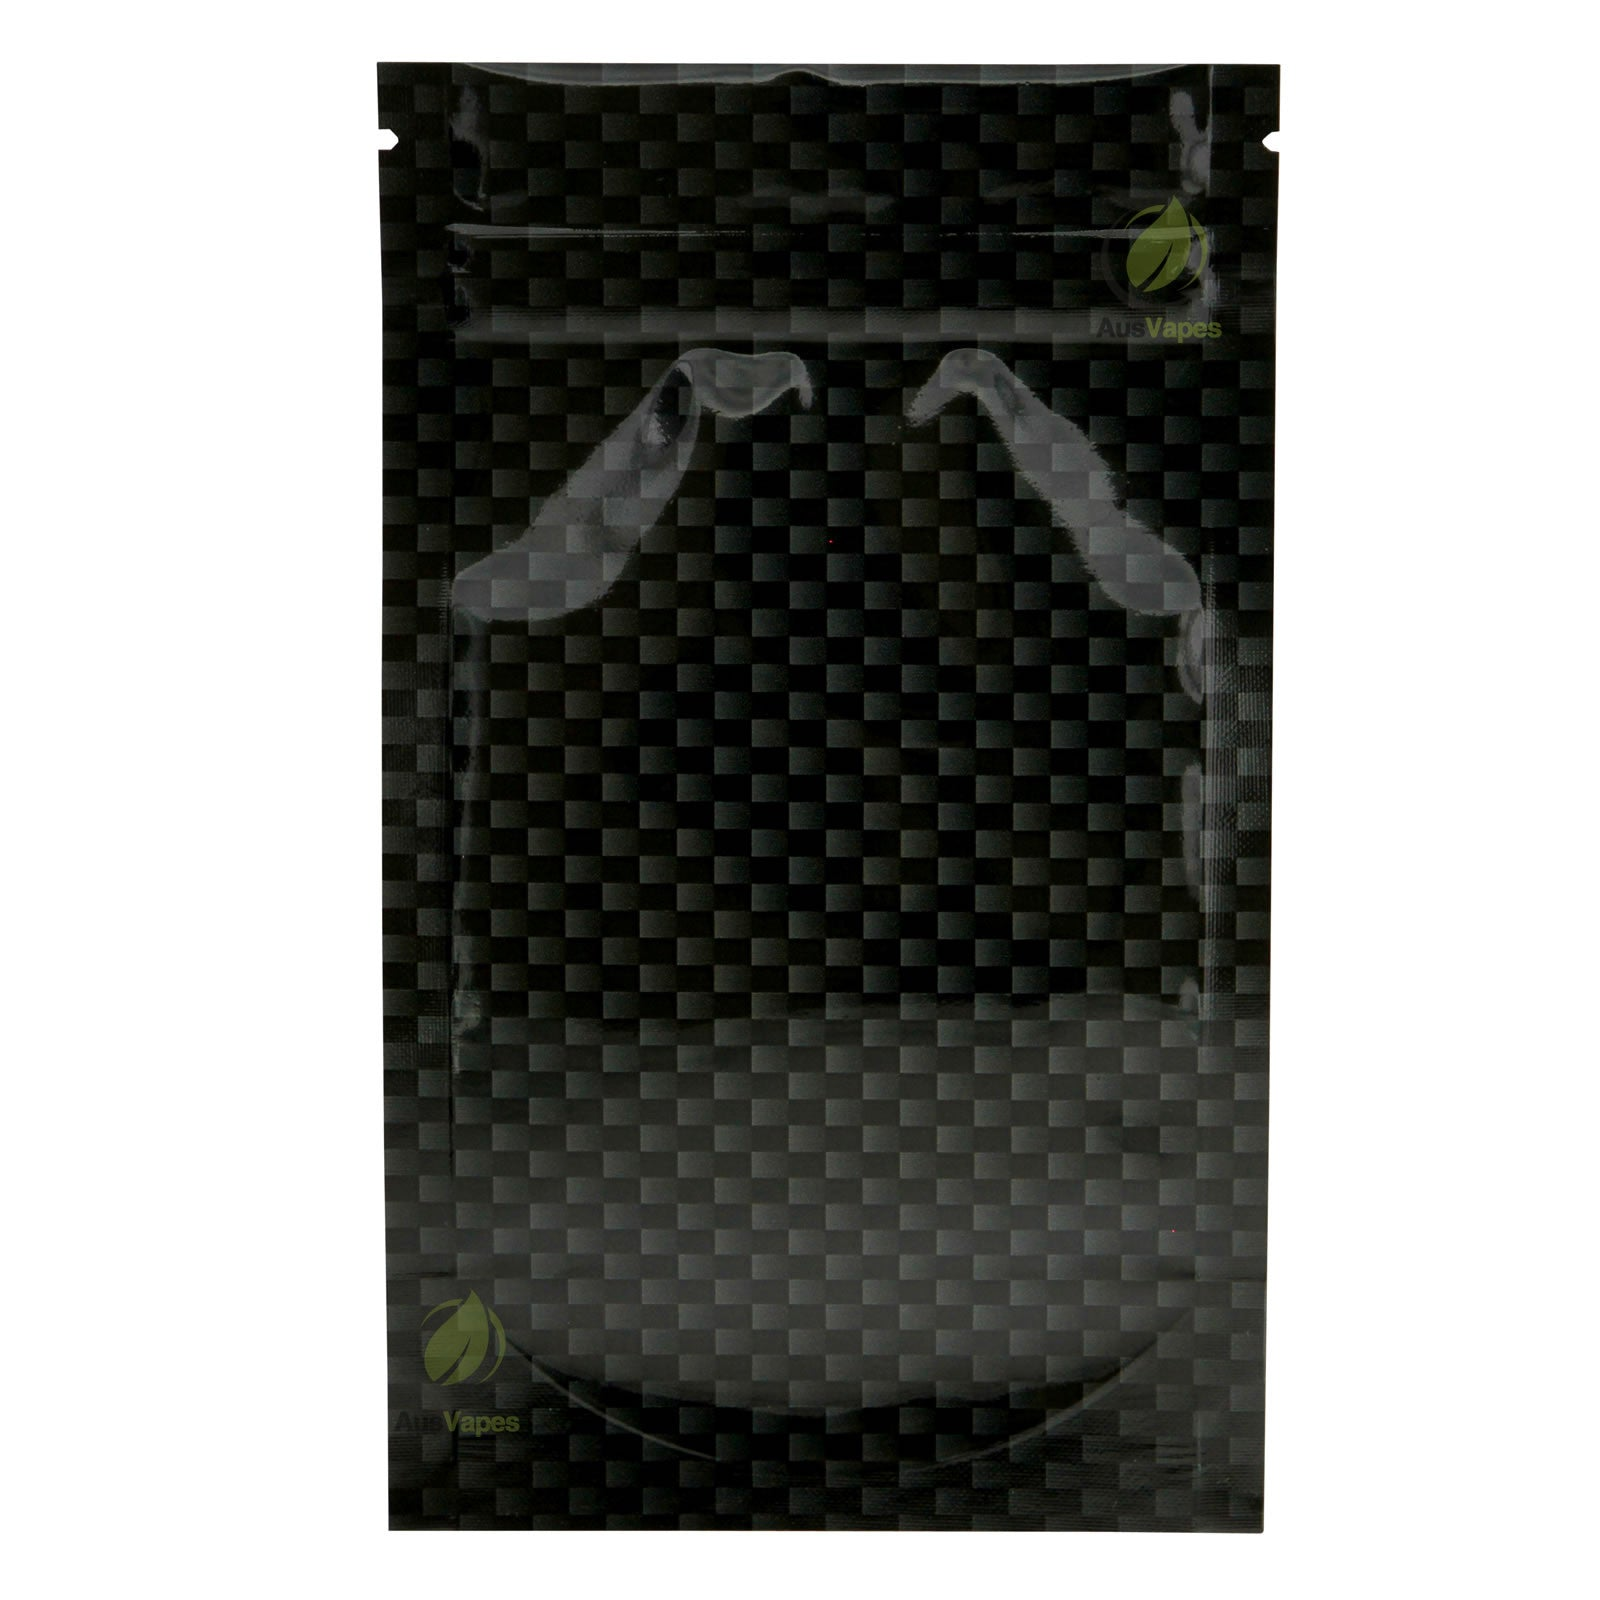 DISCONTINUED Cannaline Stealth Smell Proof Bags - Medium (10 pack)